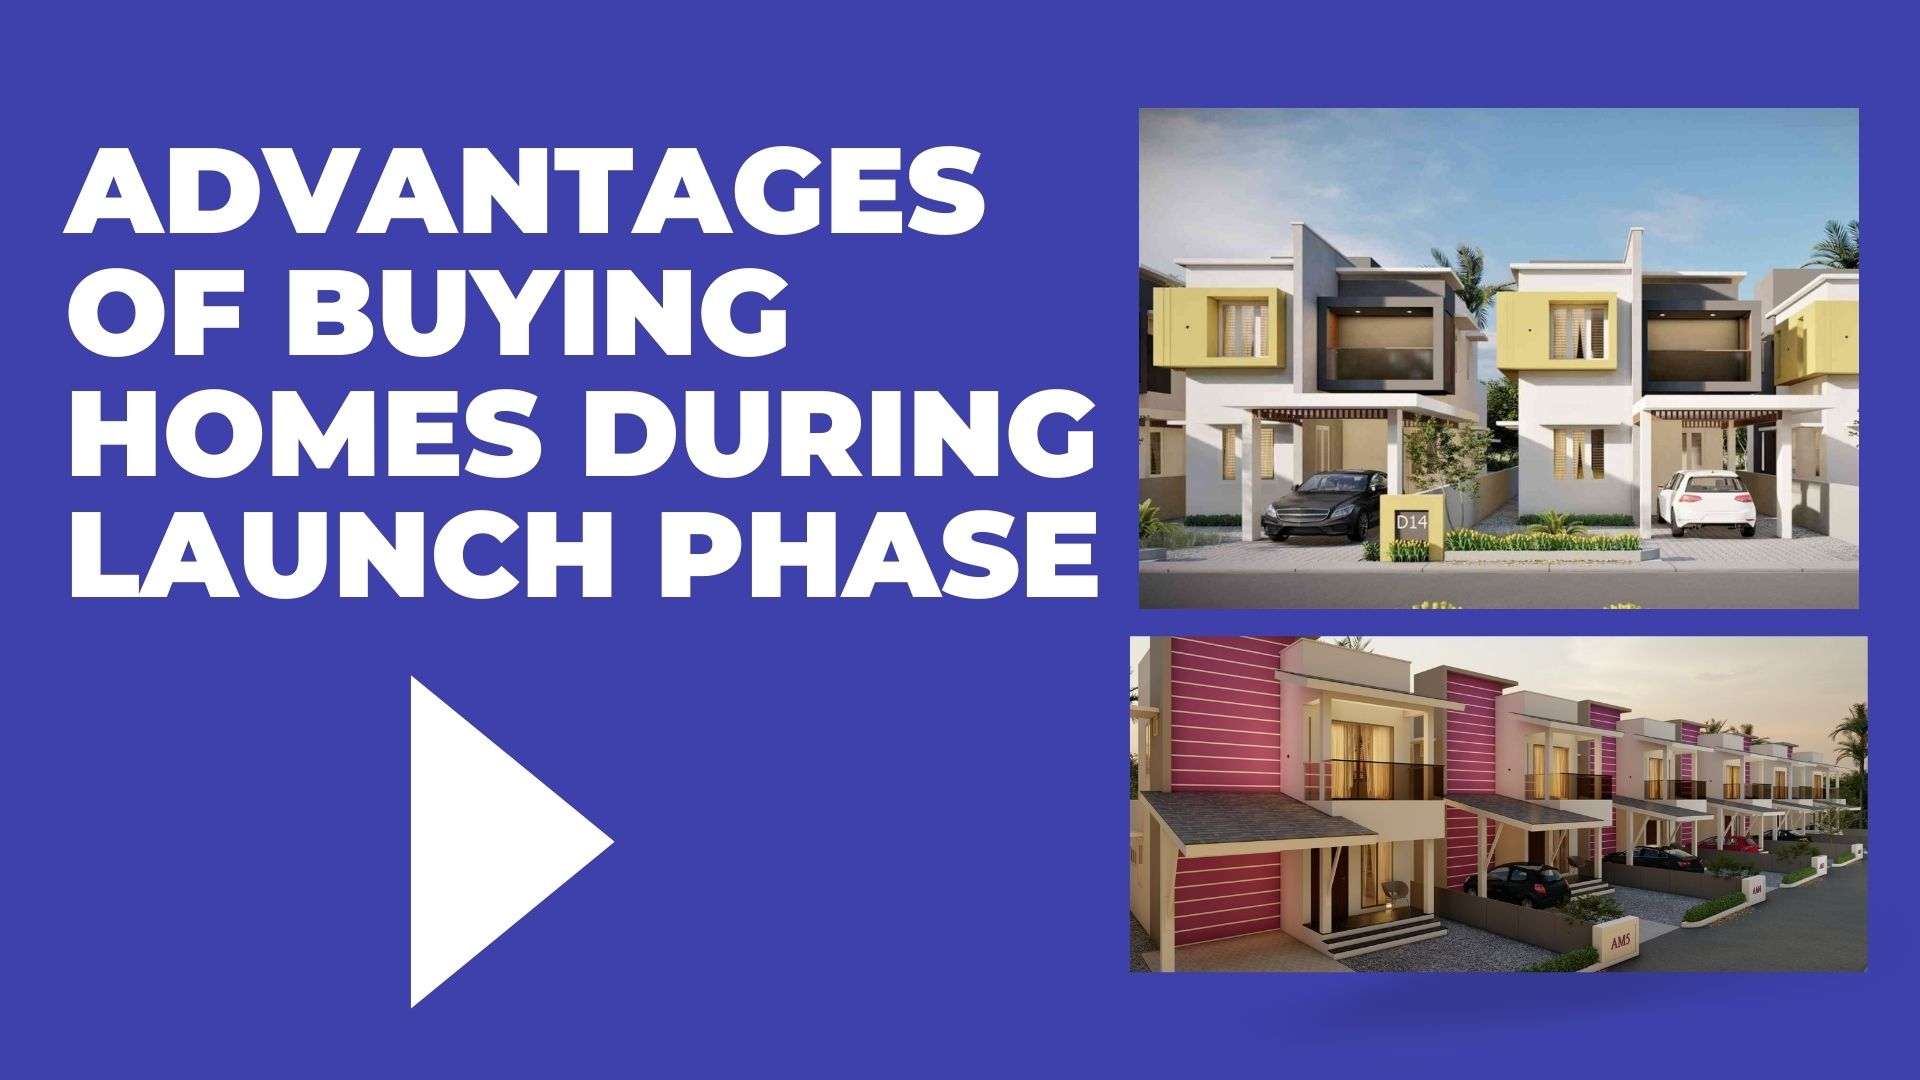 Advantages of buying homes during launch phase